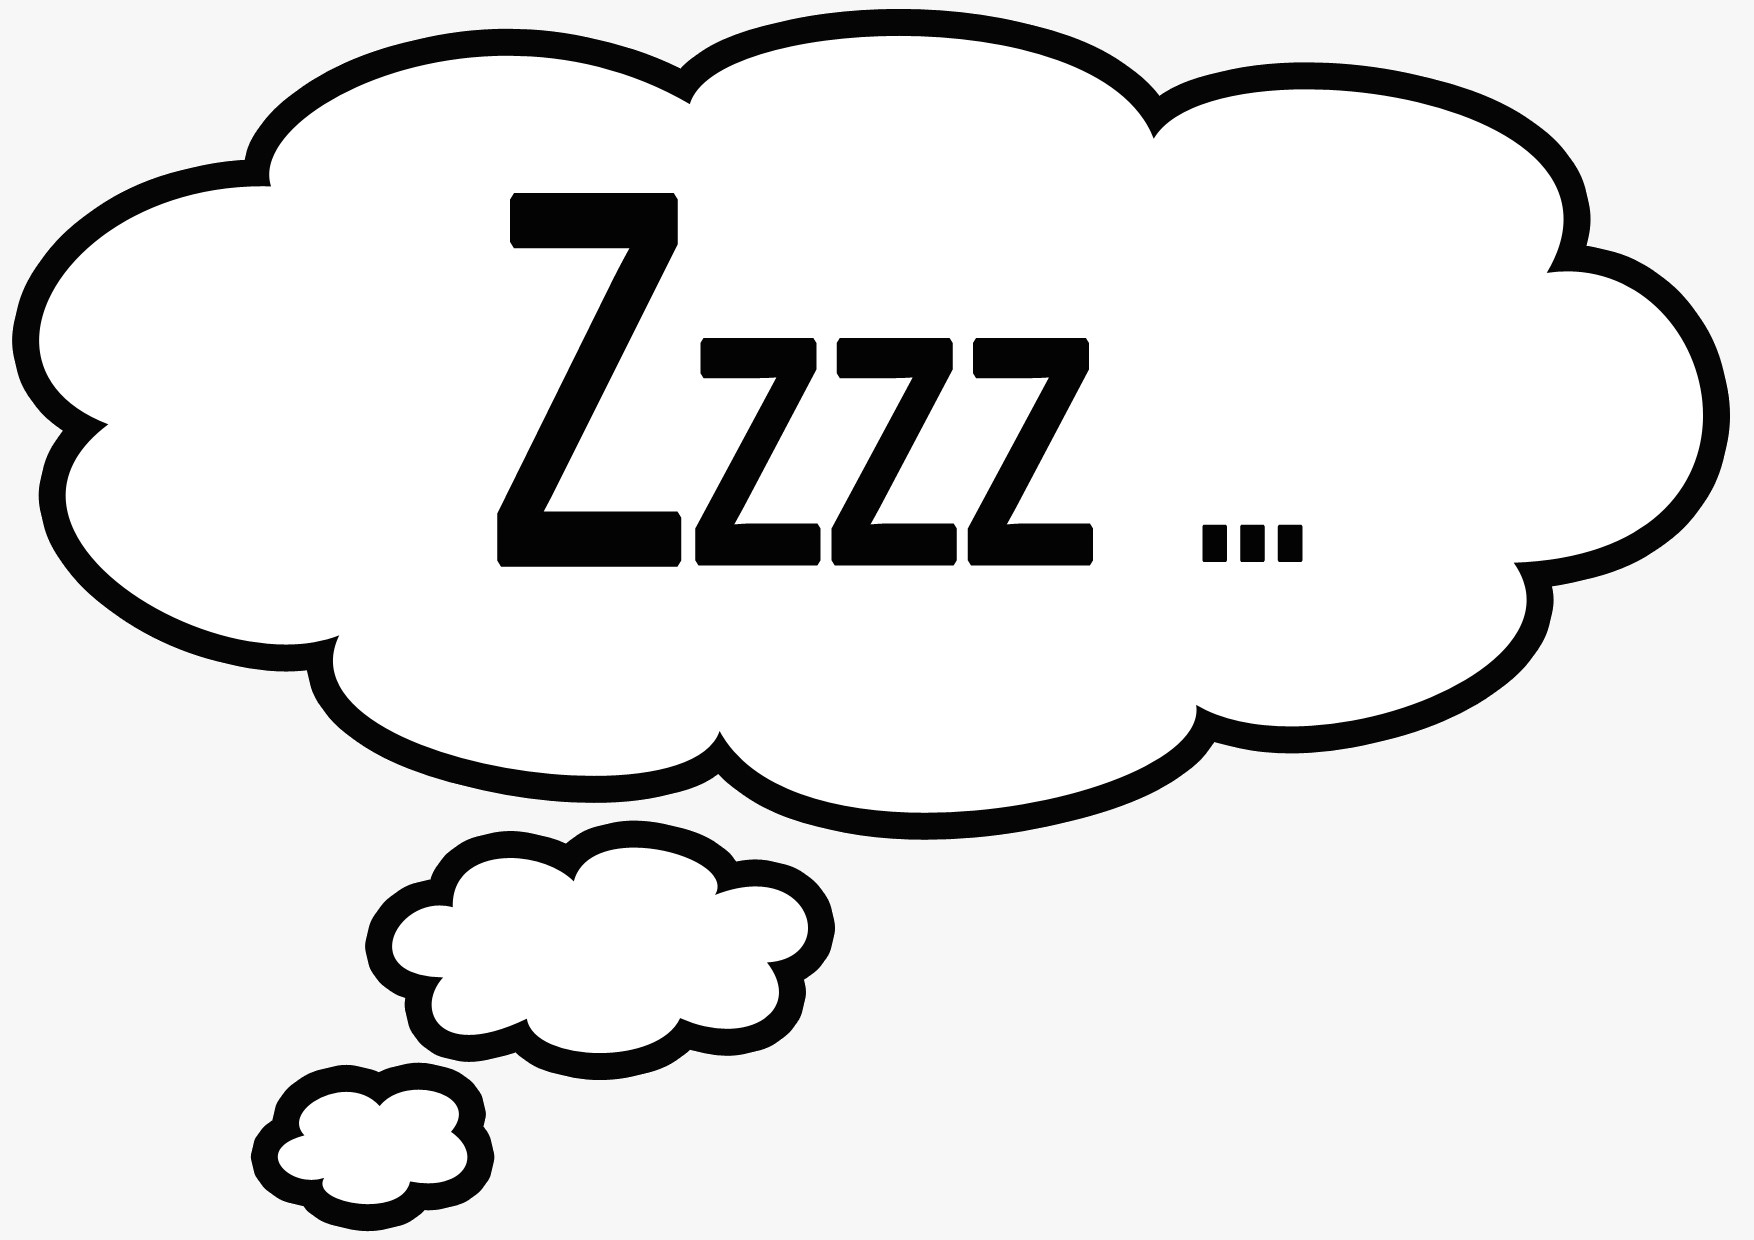 Sleeping Cartoon Zzz Naiqkh Clipart On Psychology And